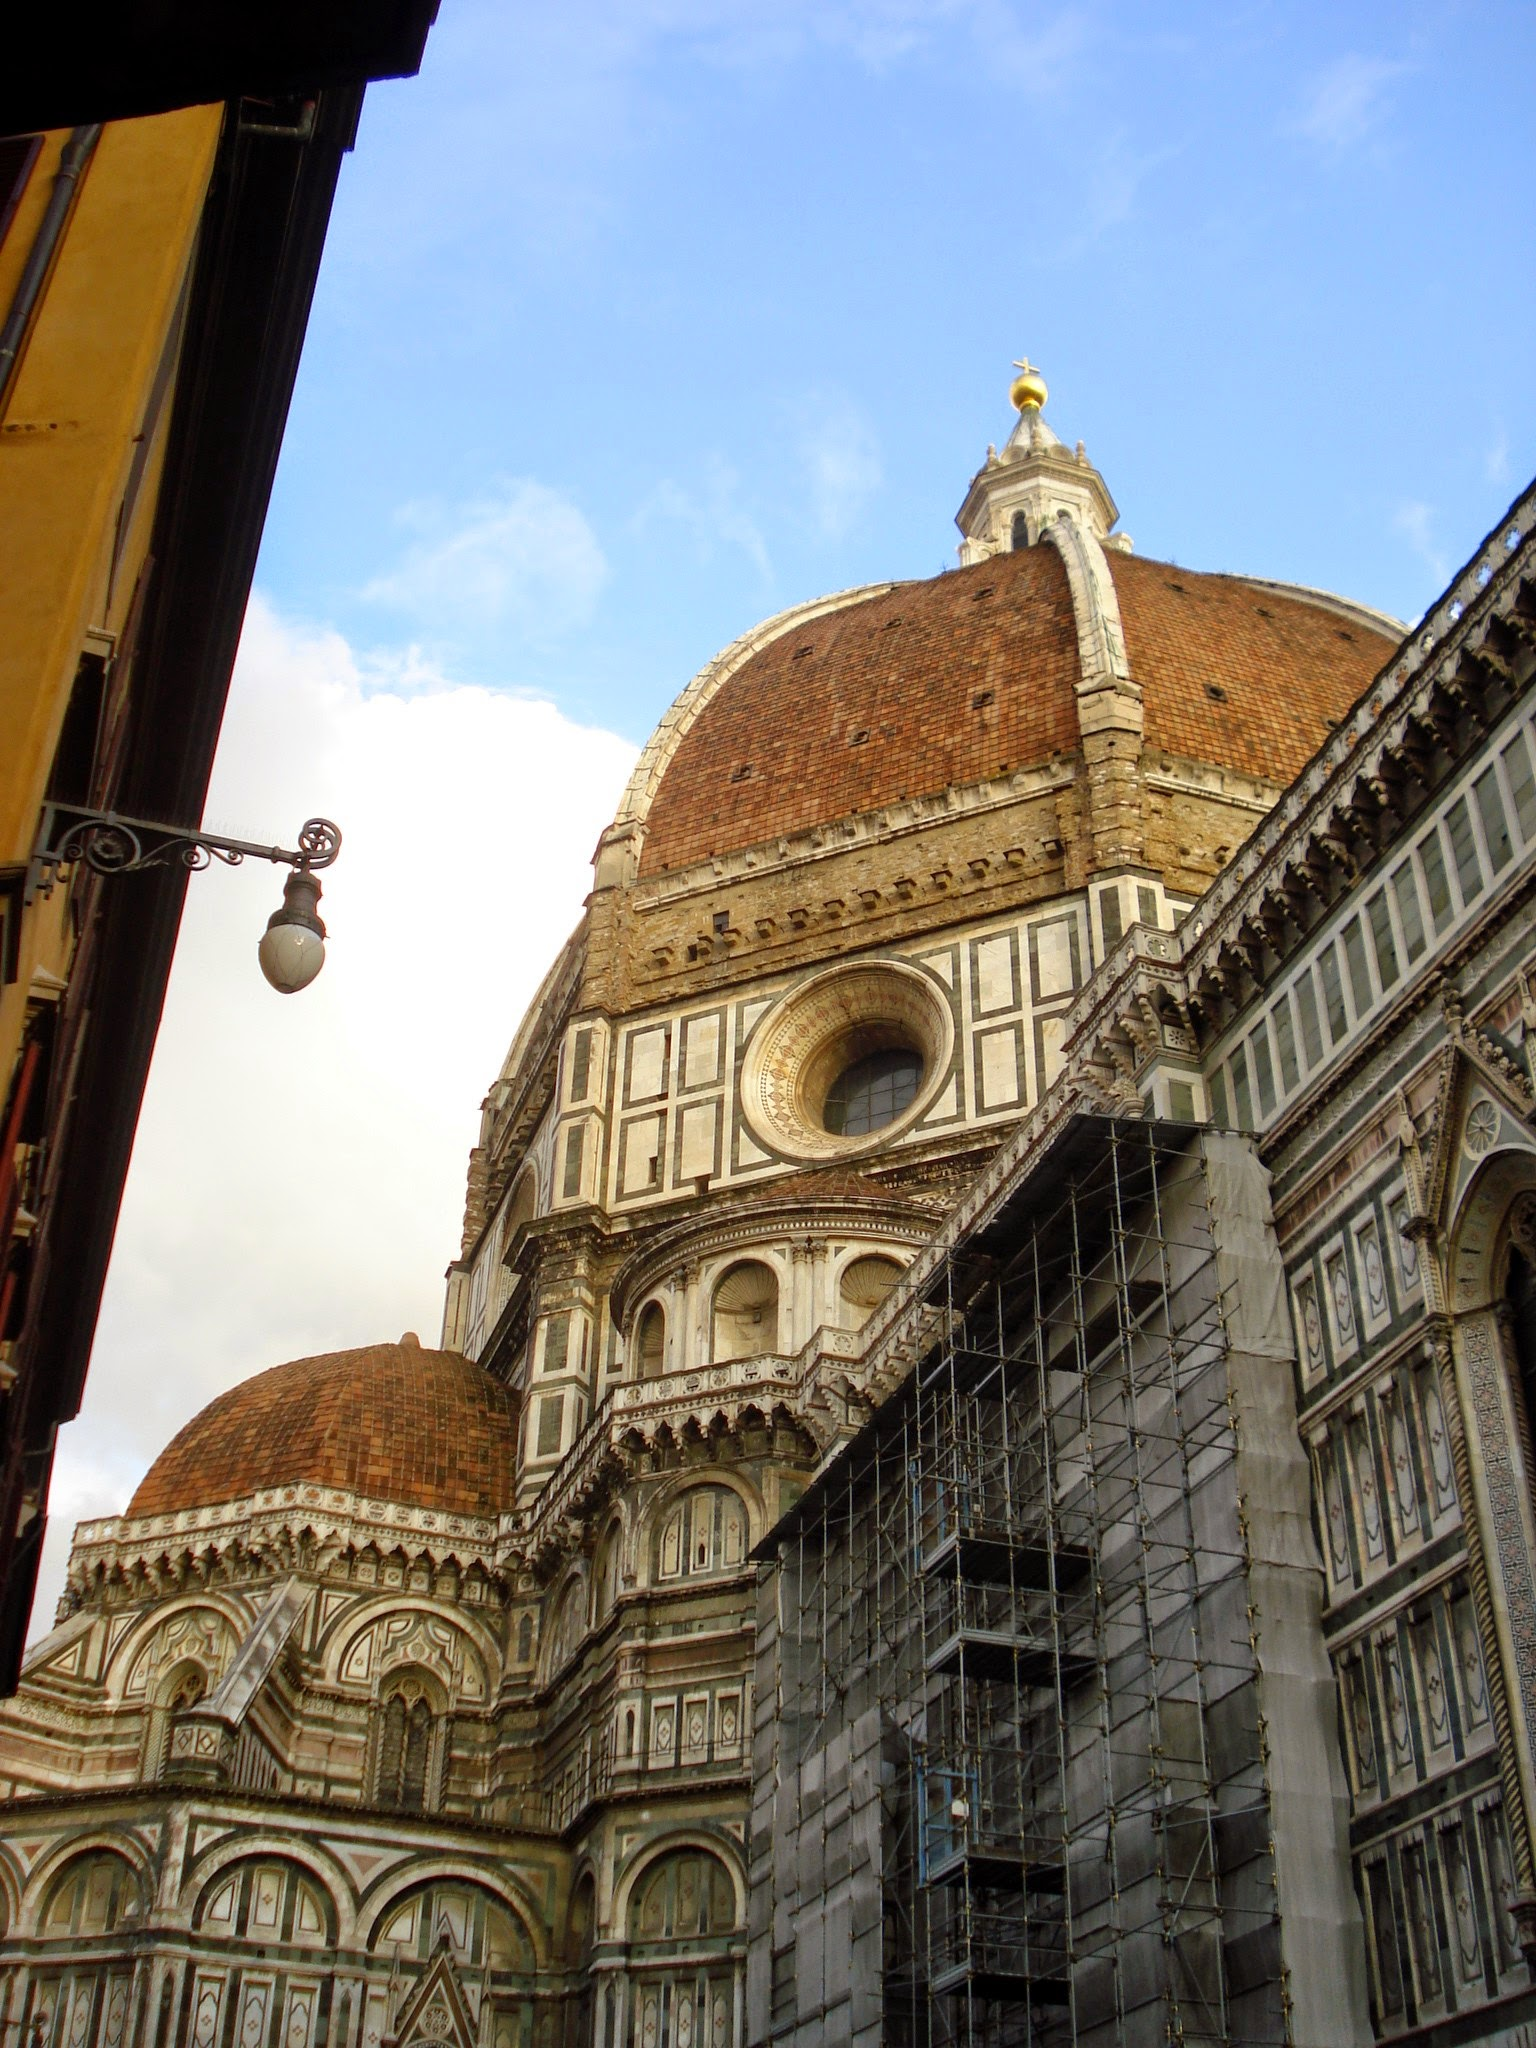 duomo in Florence, Italy during our 2010 adventure. ouritalianjourney.com